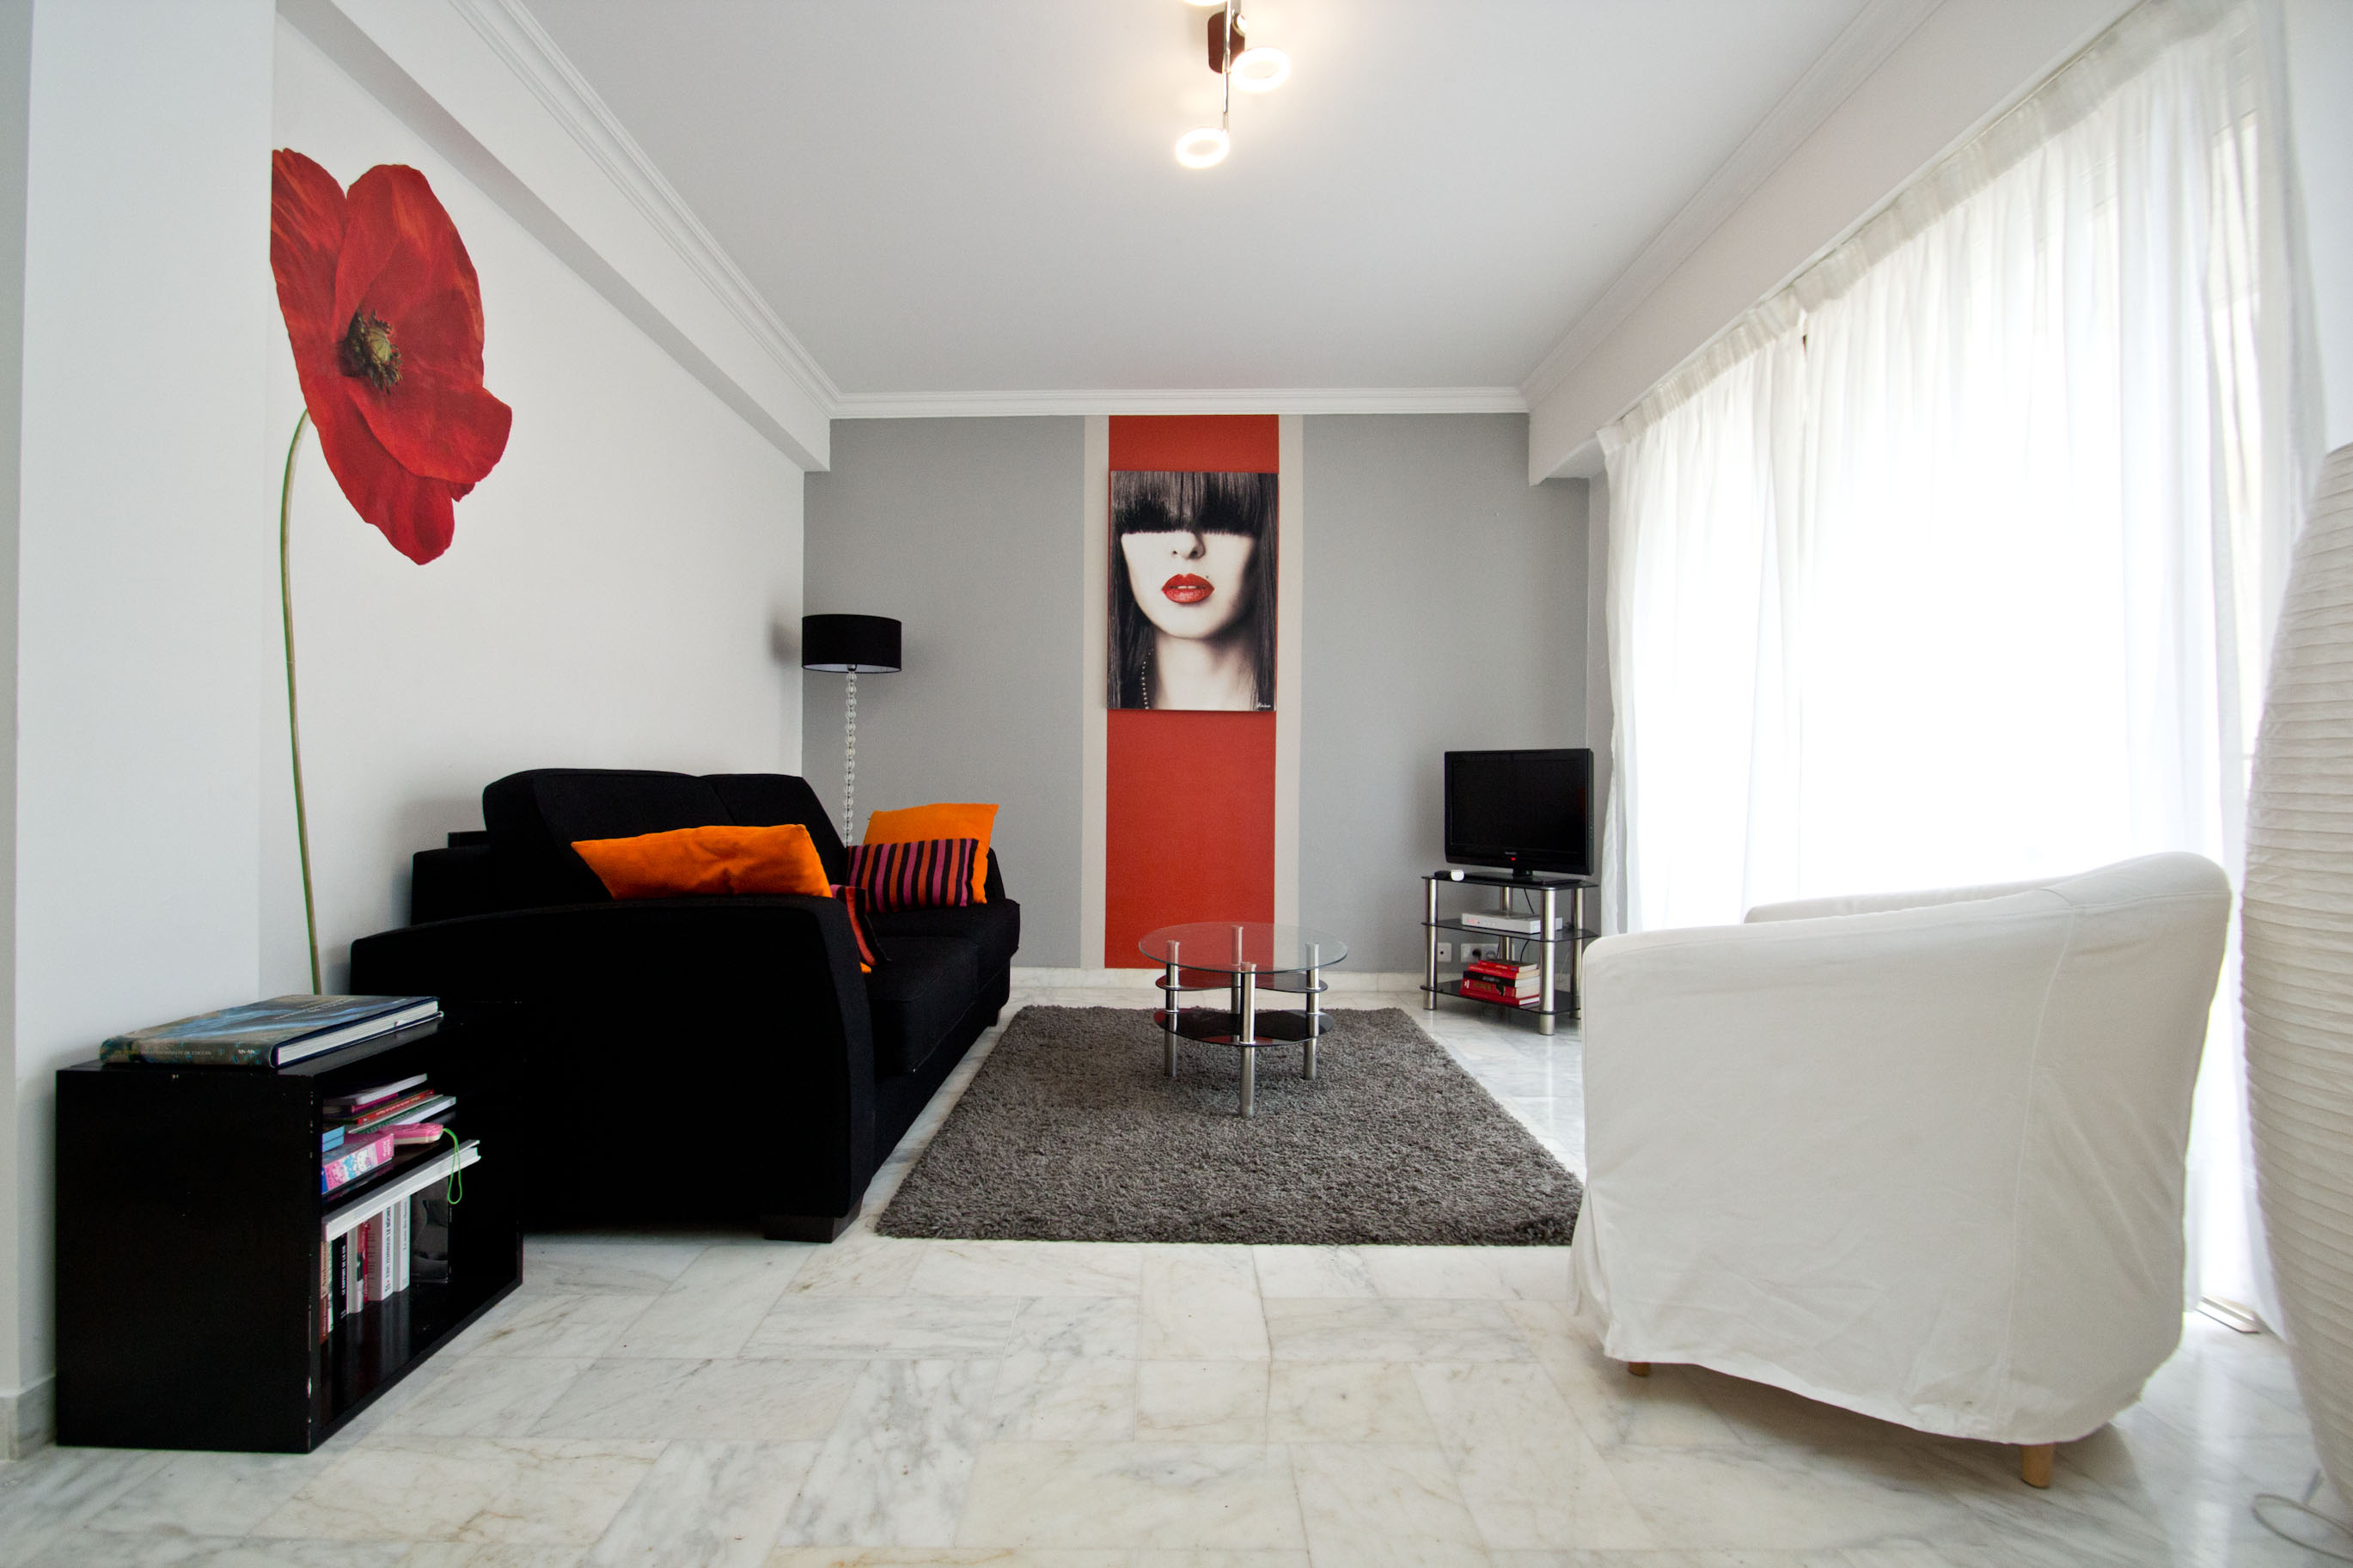 Appartement 1 chambre louer cannes grand hotel ruhl for Louer chambre hotel